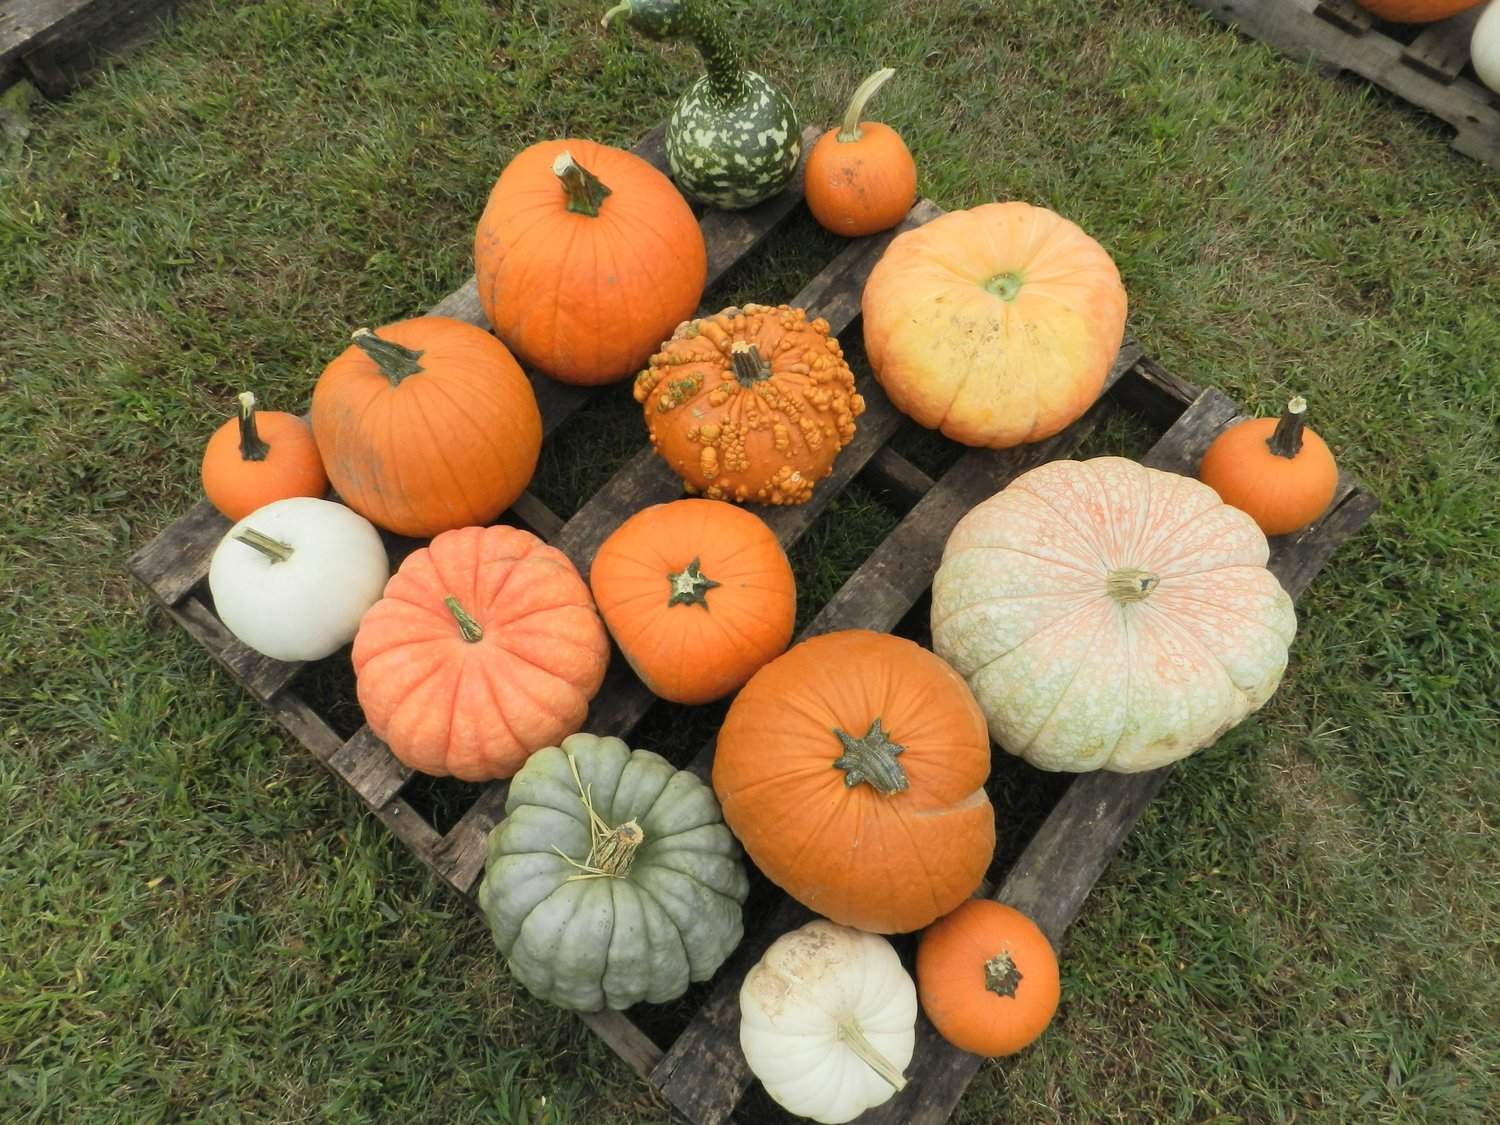 A palette of pumpkins in the field.